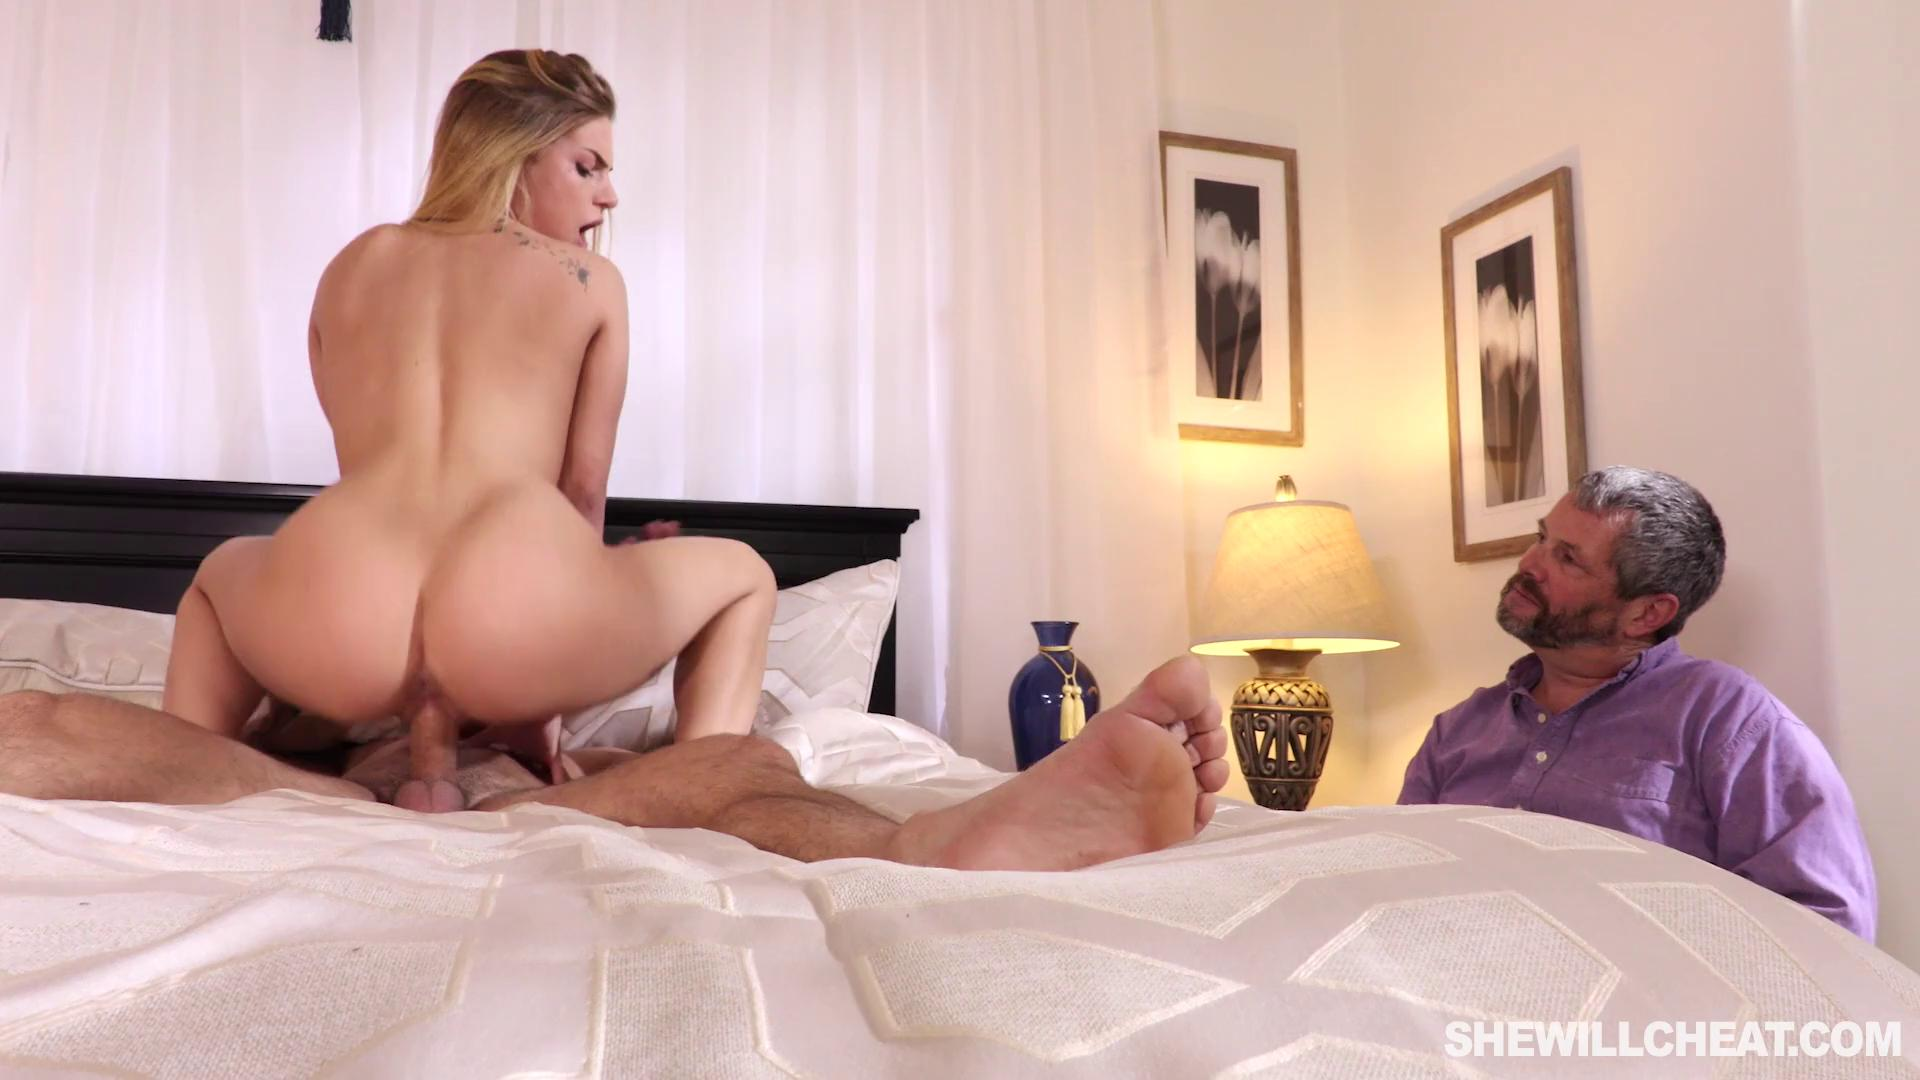 Fucked Babysitter While Wife